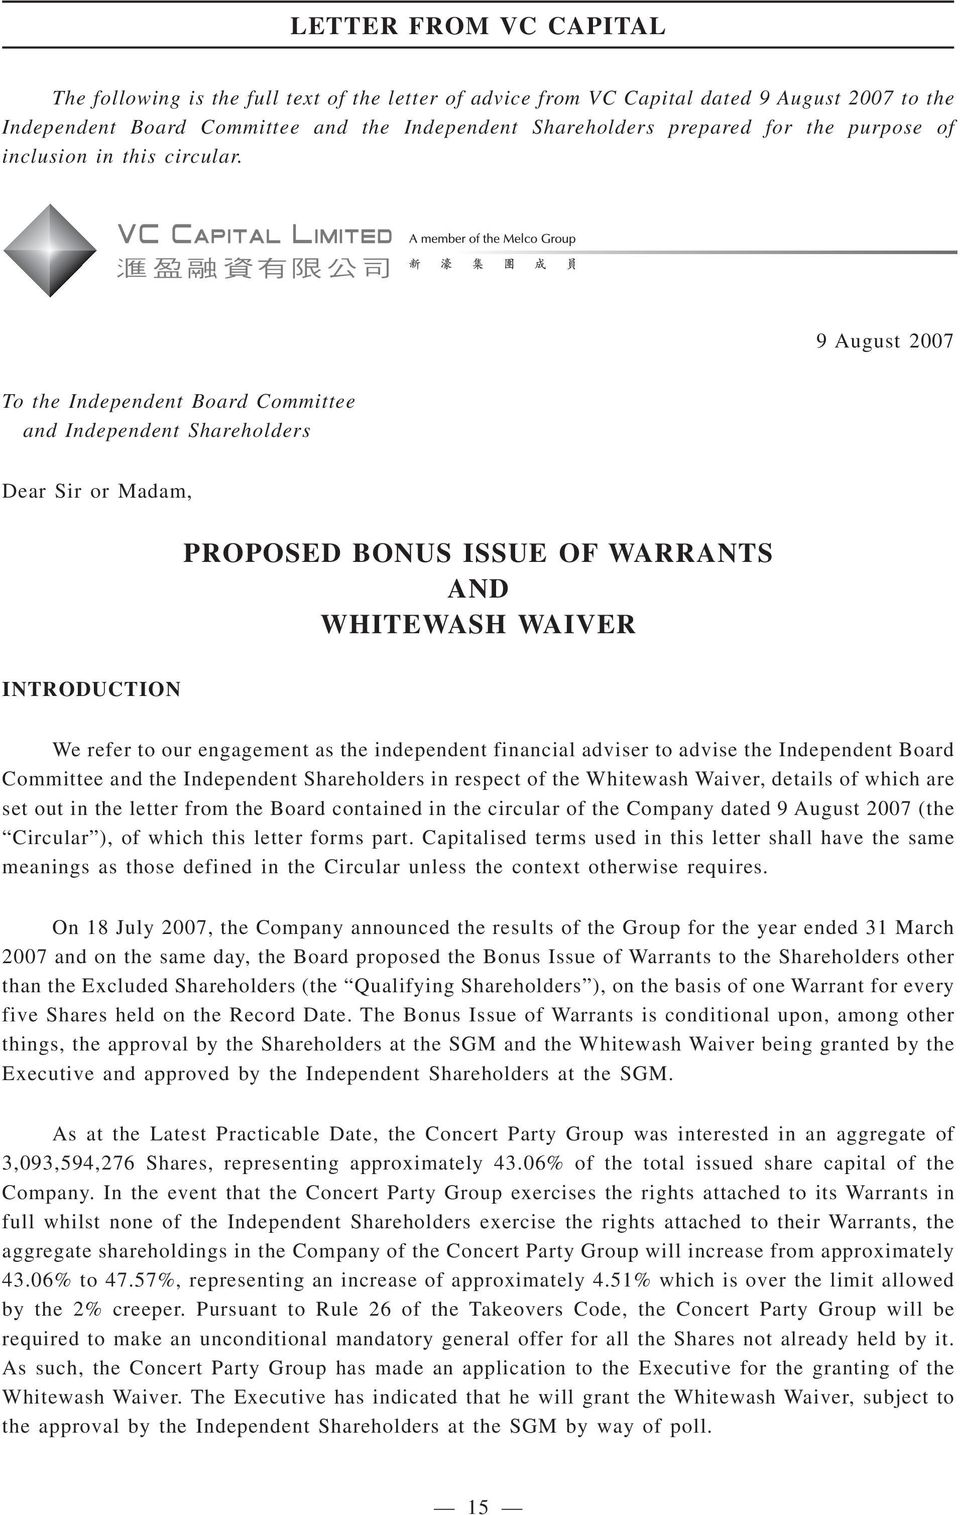 VI4(a) 9 August 2007 To the Independent Board Committee and Independent Shareholders Dear Sir or Madam, PROPOSED BONUS ISSUE OF WARRANTS AND WHITEWASH WAIVER INTRODUCTION We refer to our engagement